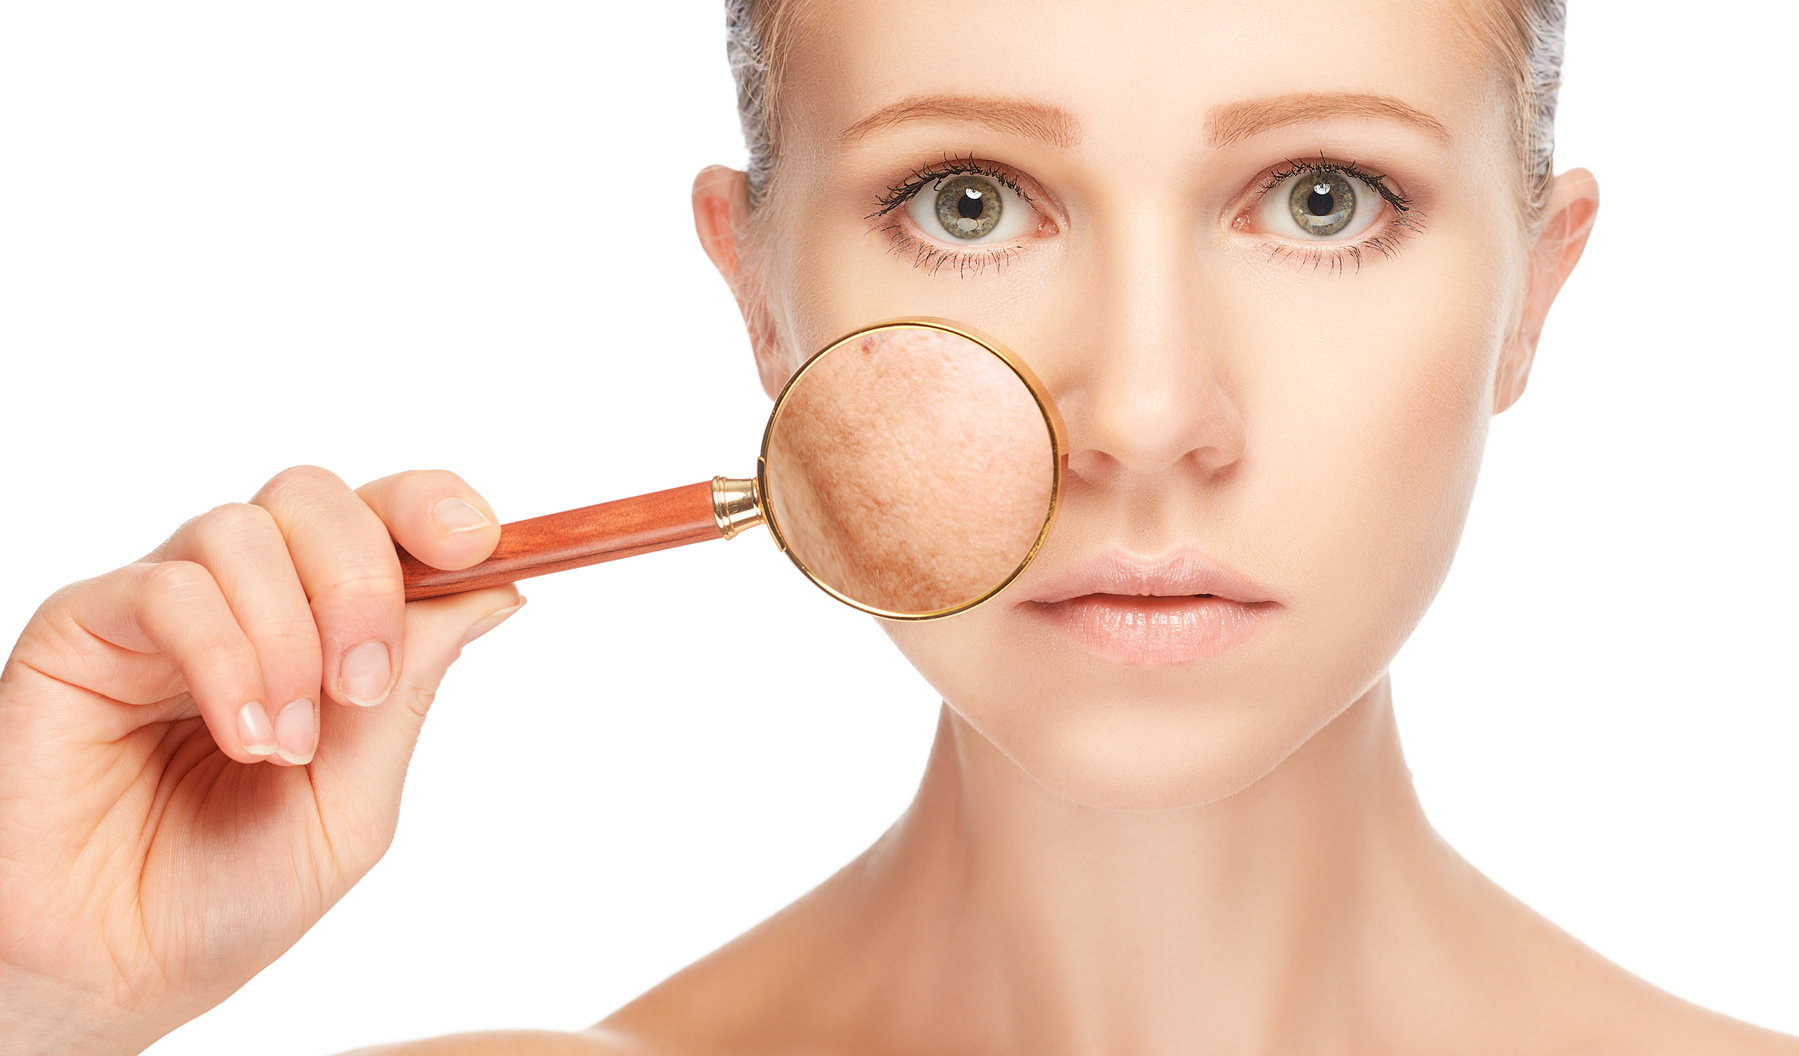 concept skincare. Skin of woman with magnifier before and after the procedure